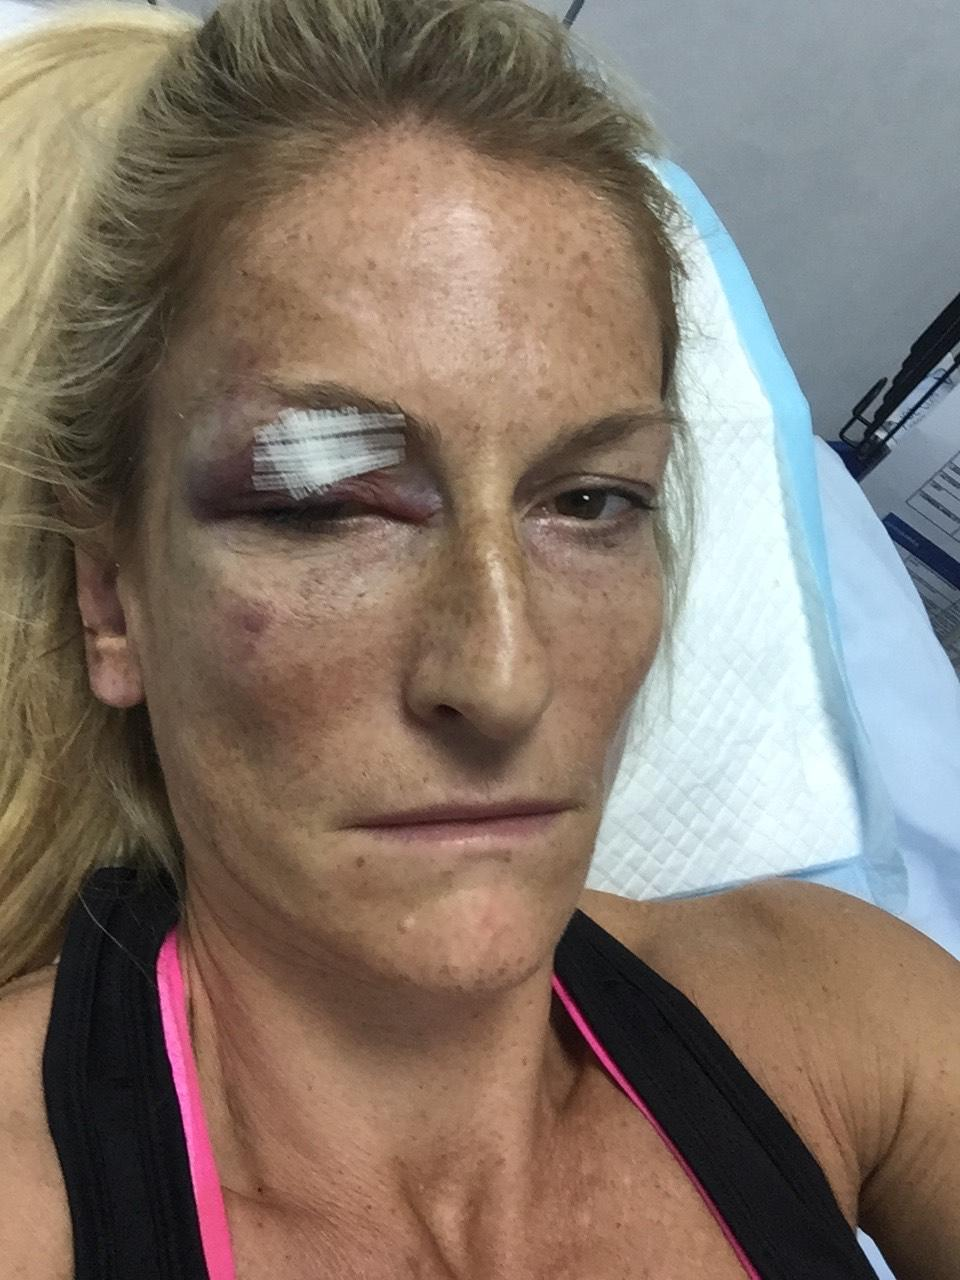 Alison Stockton says she 'was incredibly lucky to escape with so few injuries' after she blacked out while driving (supplied, Alison Stockton)